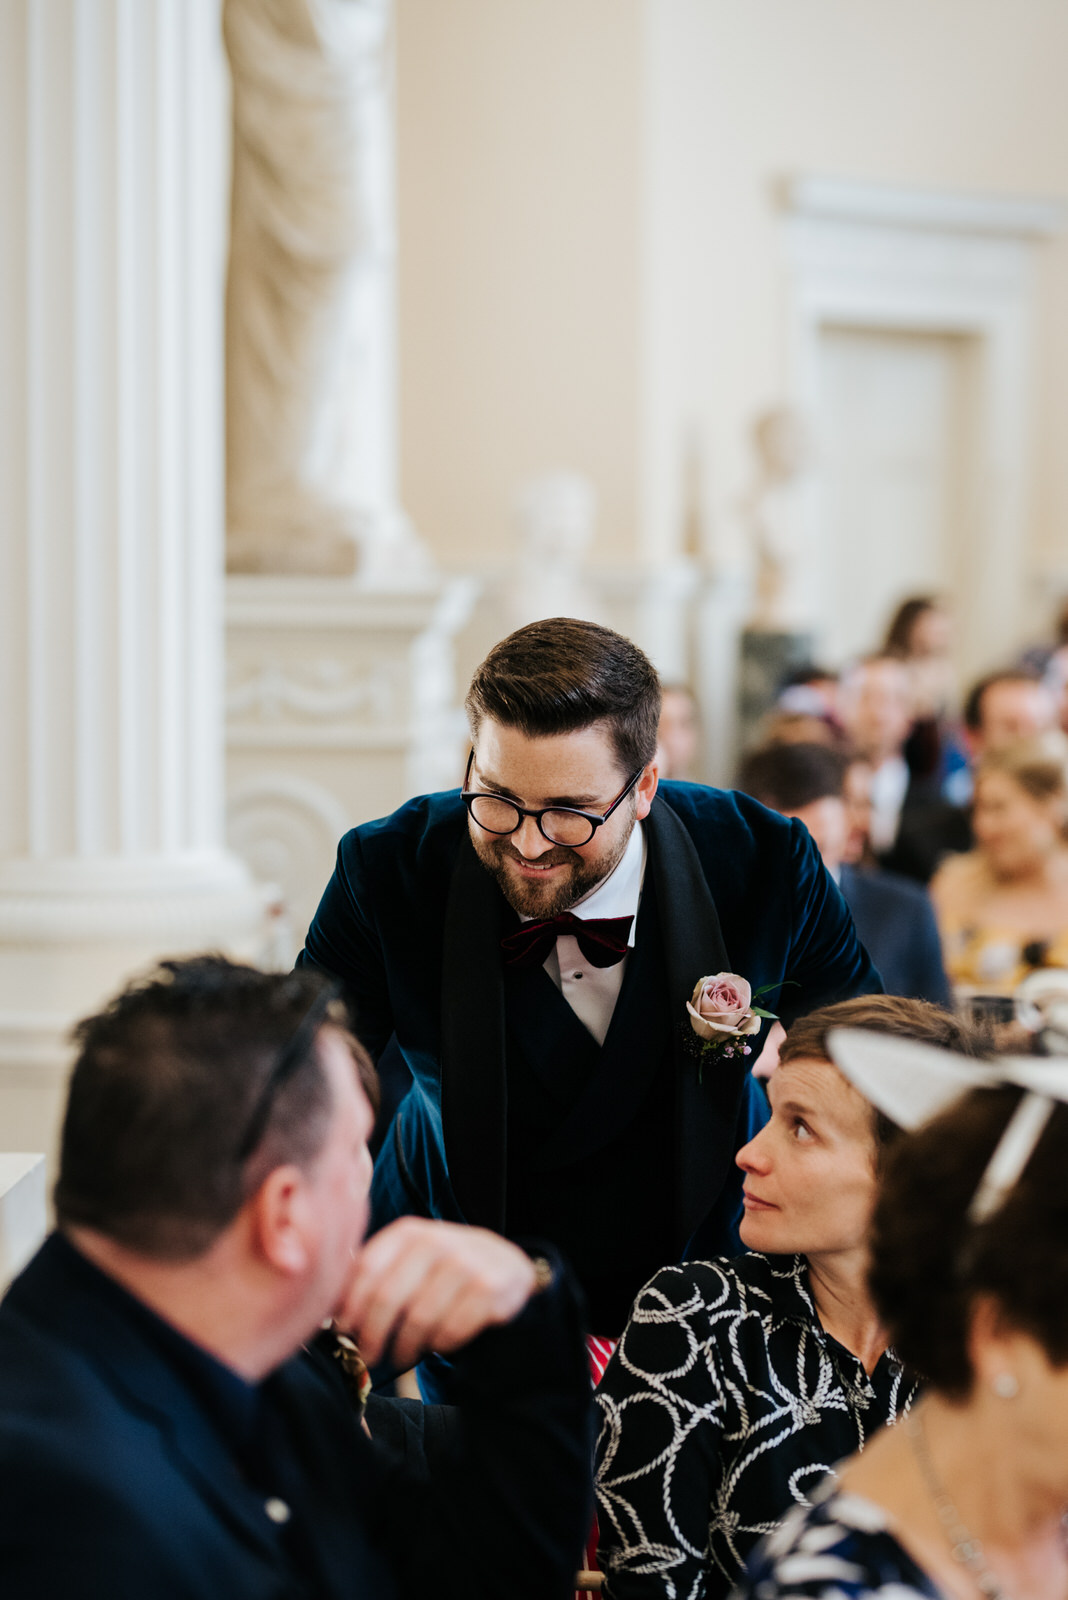 Groom chats to guests as he waits for wedding ceremony to begin